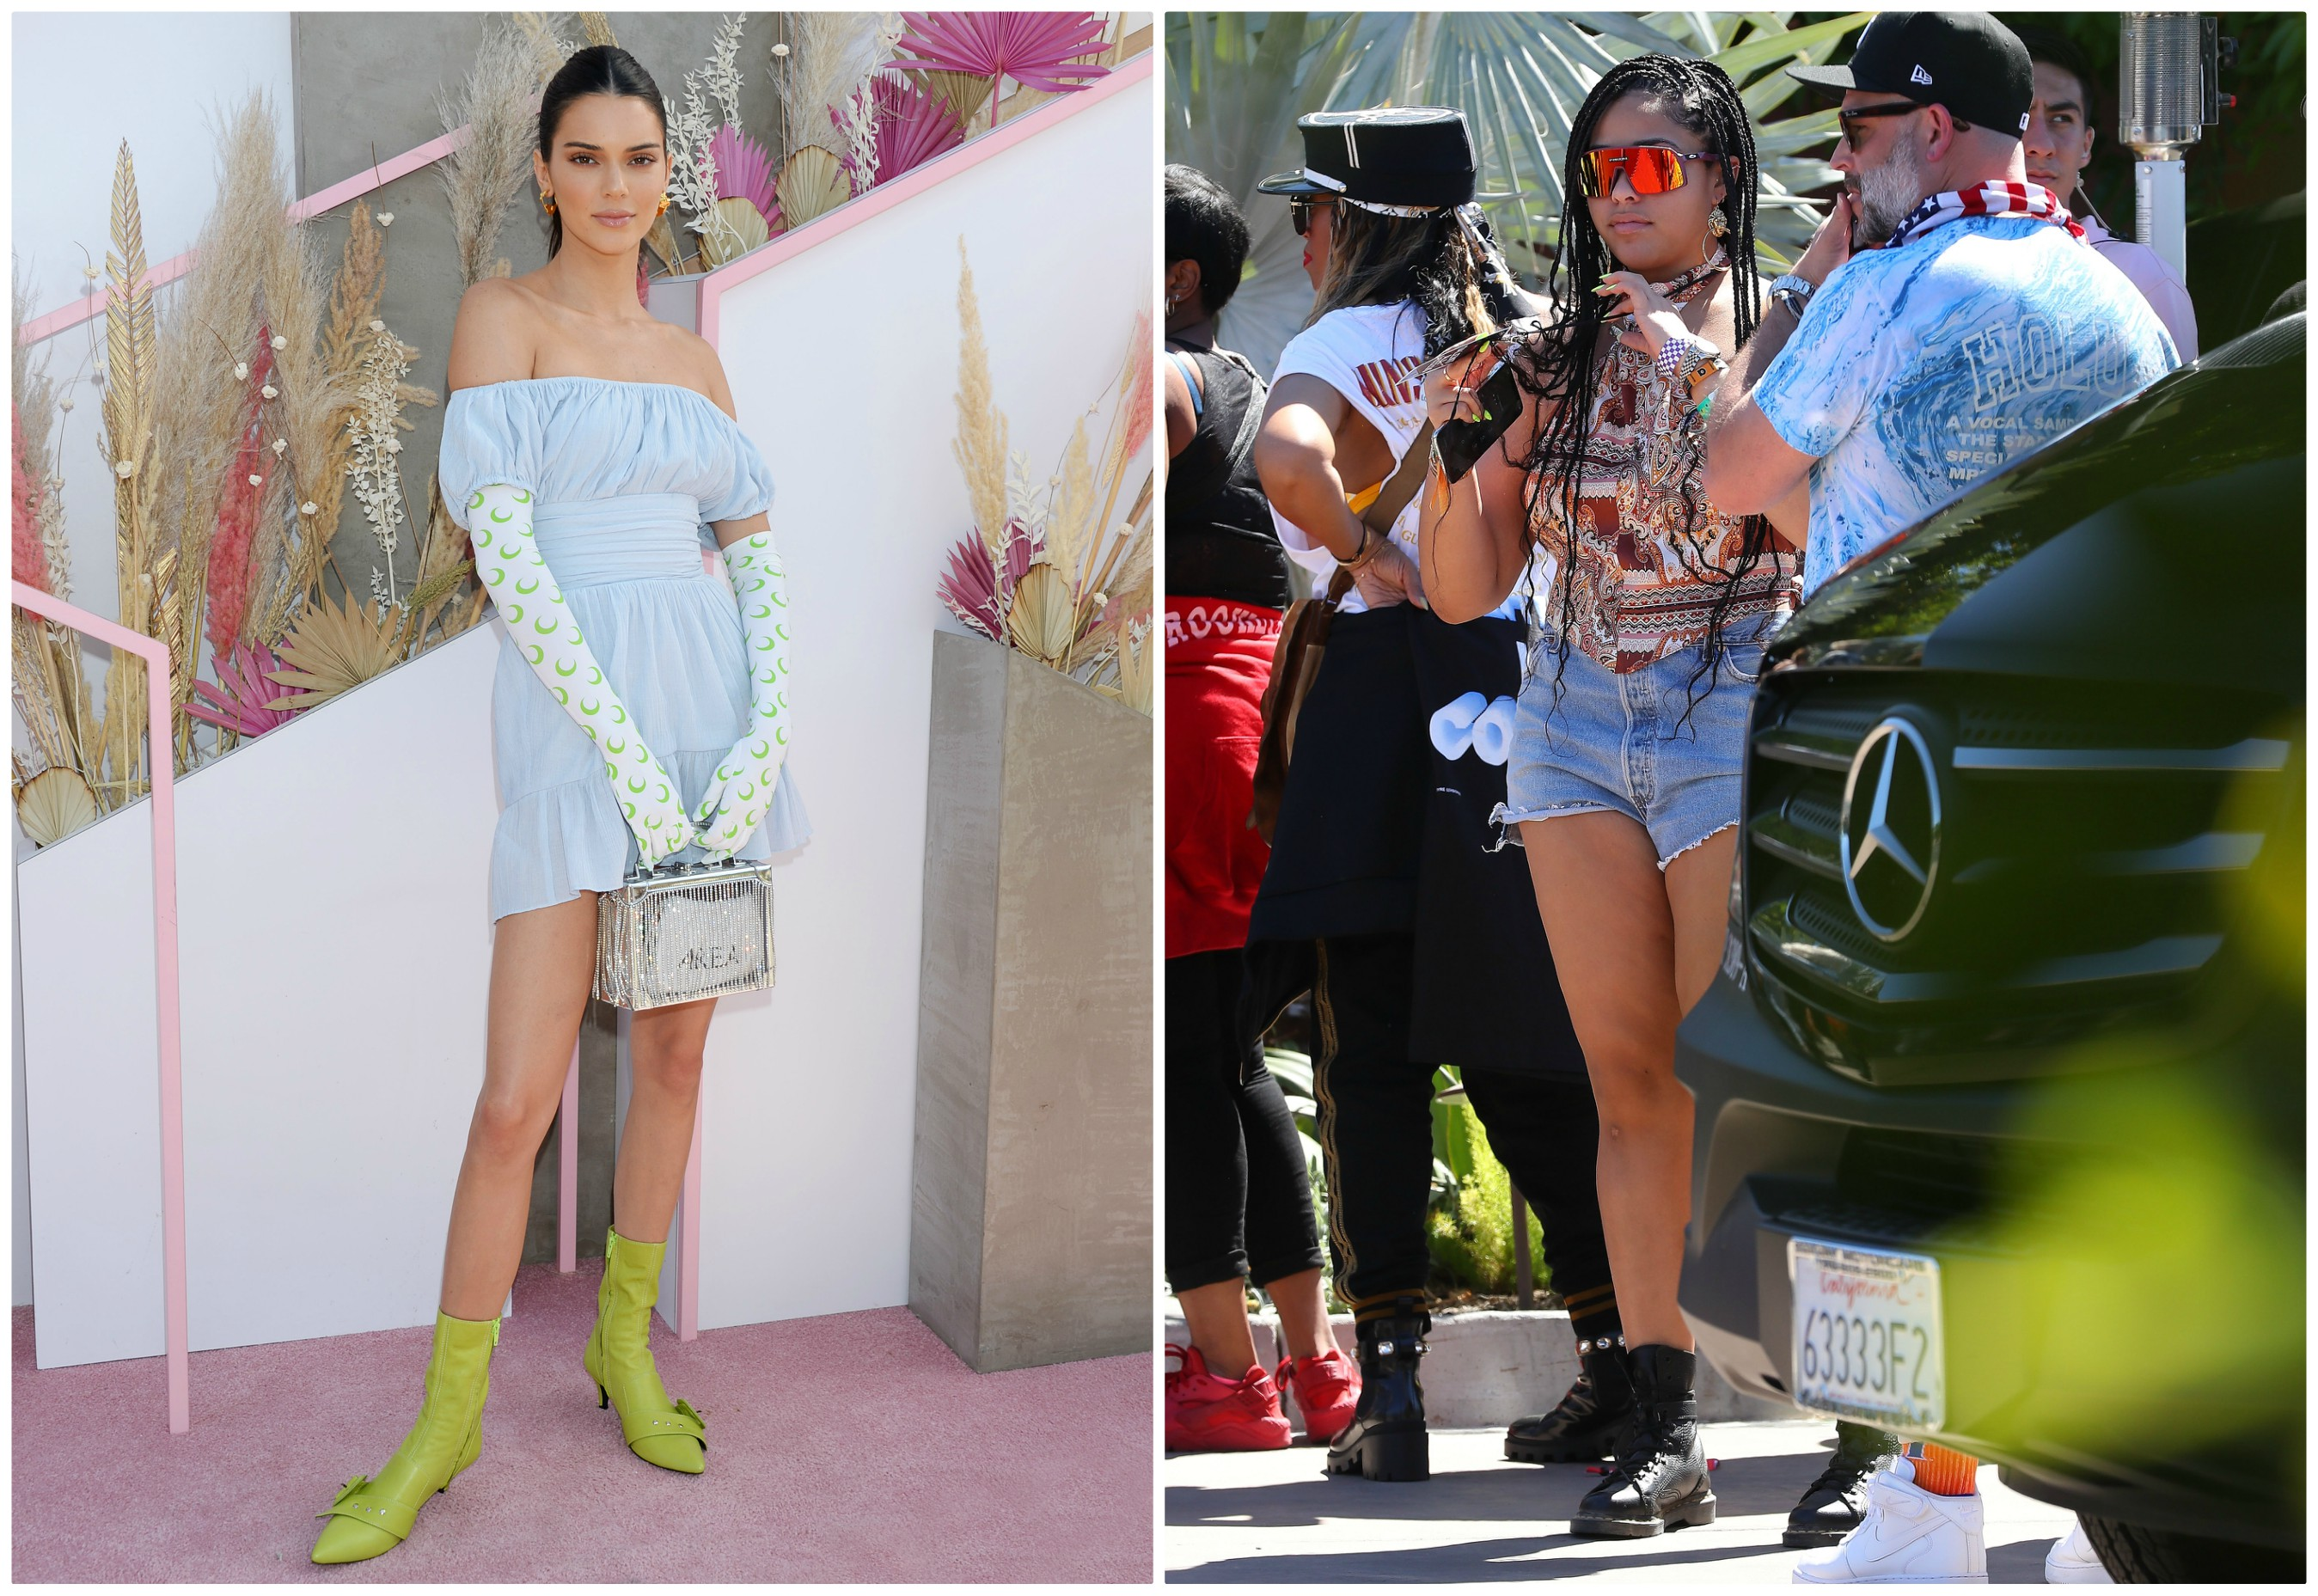 Kendall Jenner and Jordyn Woods at Coachella